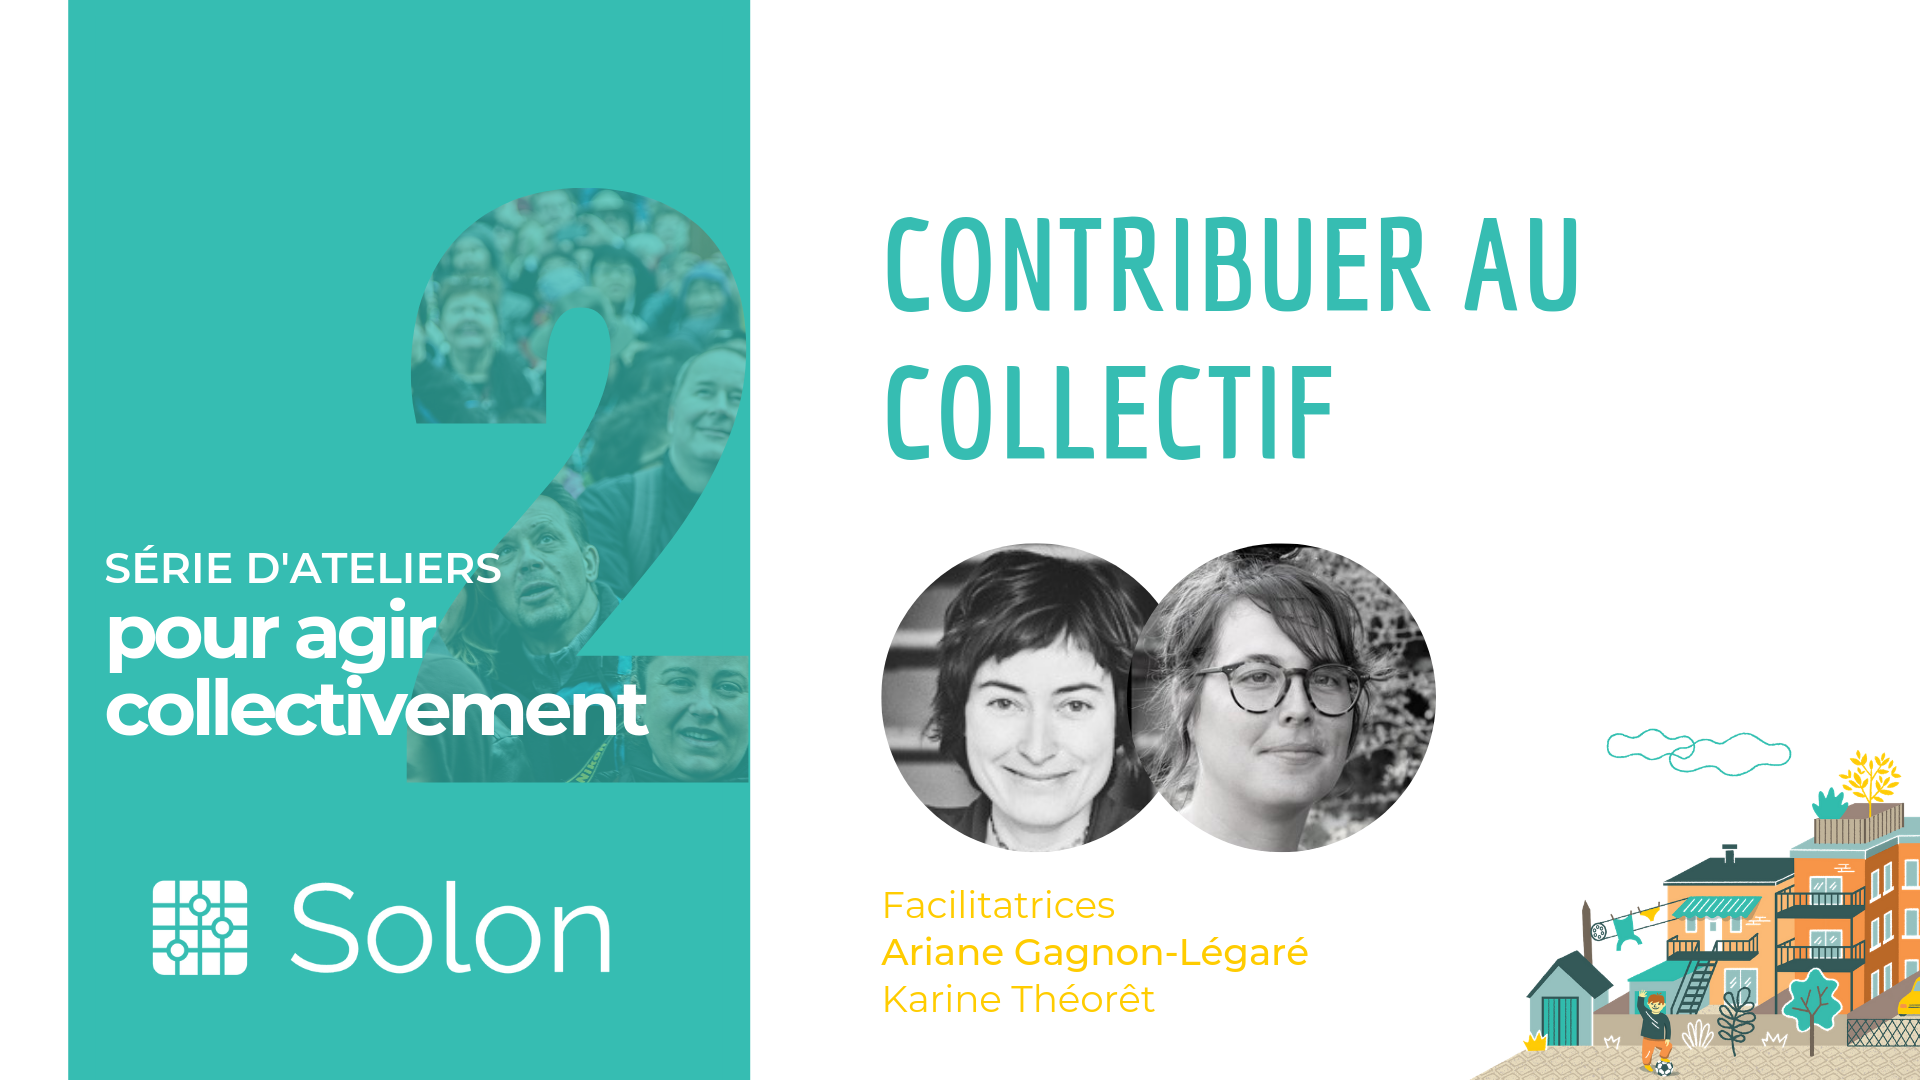 Contribuer au collectif